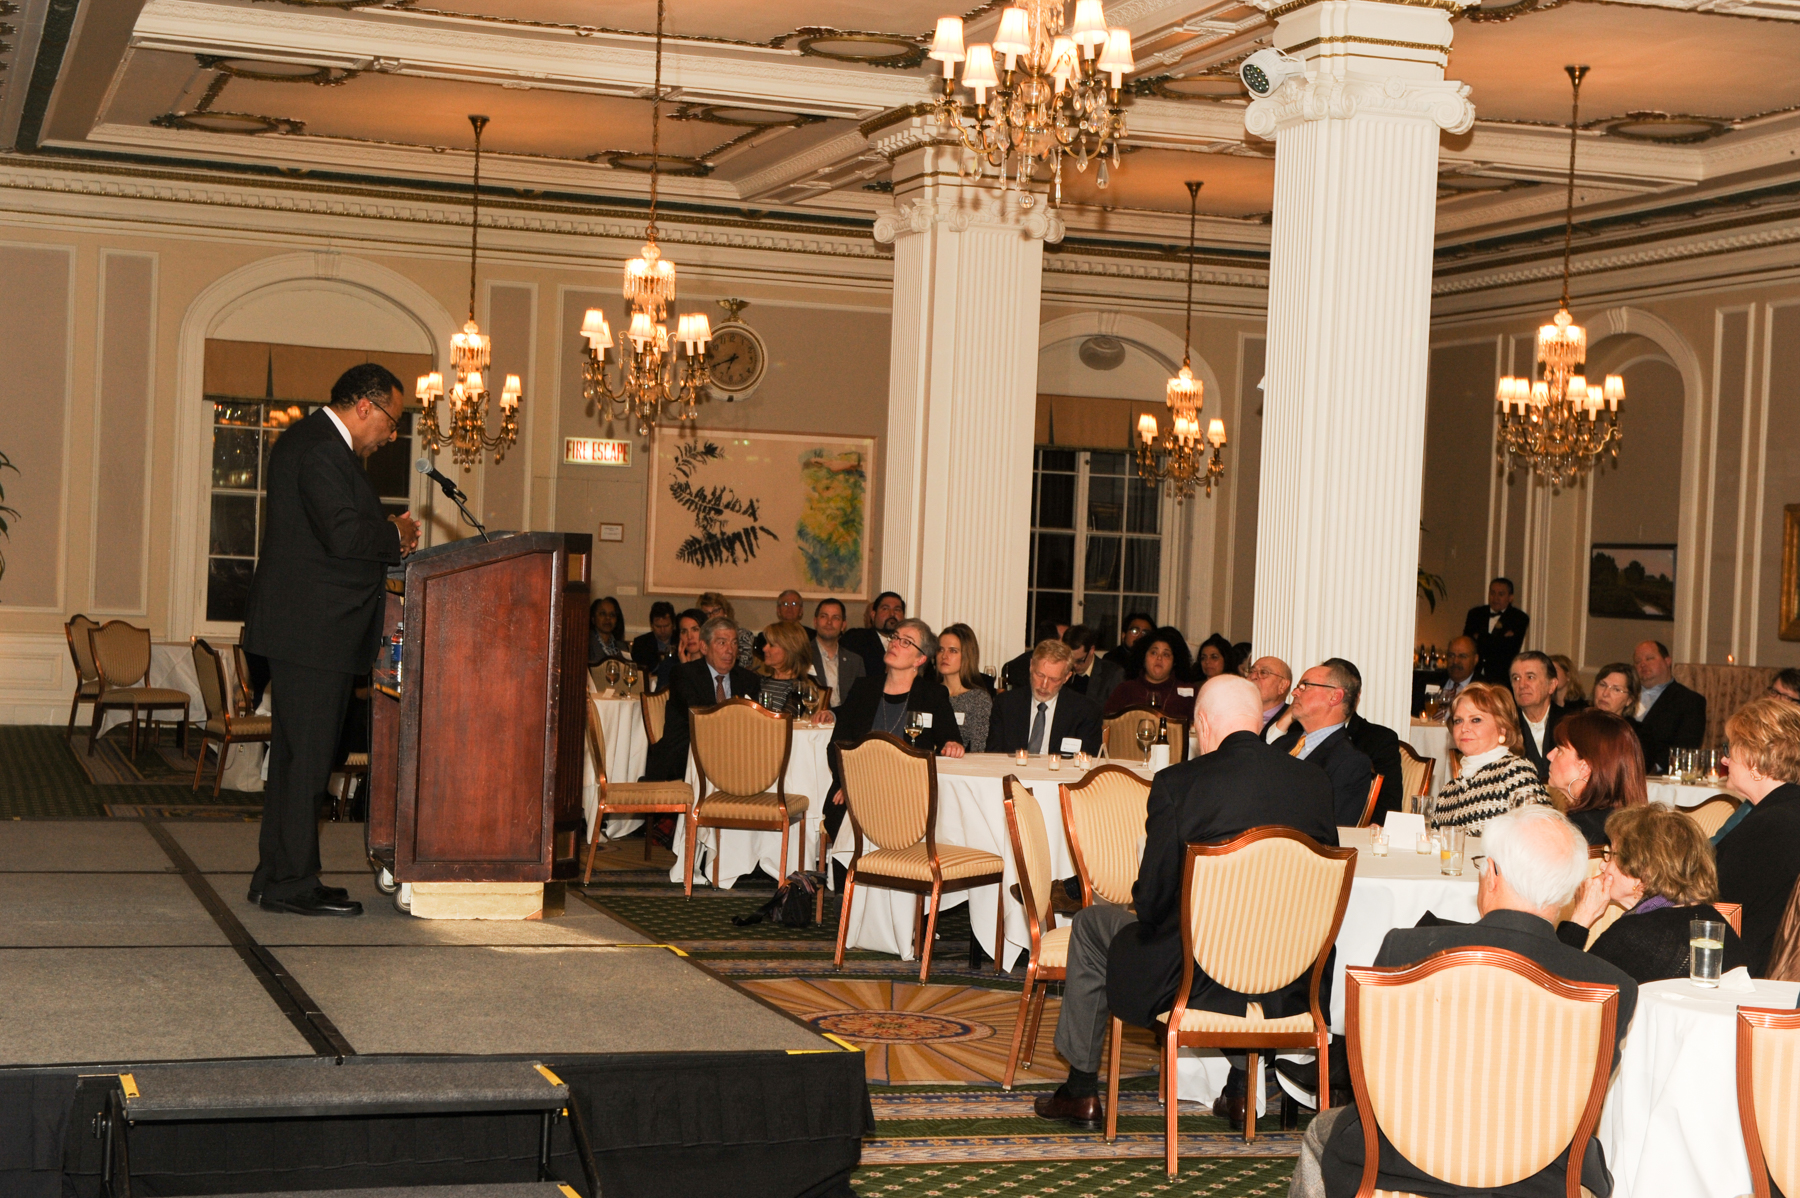 Clarence Page gives addresses attendees at the Union Club of Chicago. (Photo by Paul Berg.)​